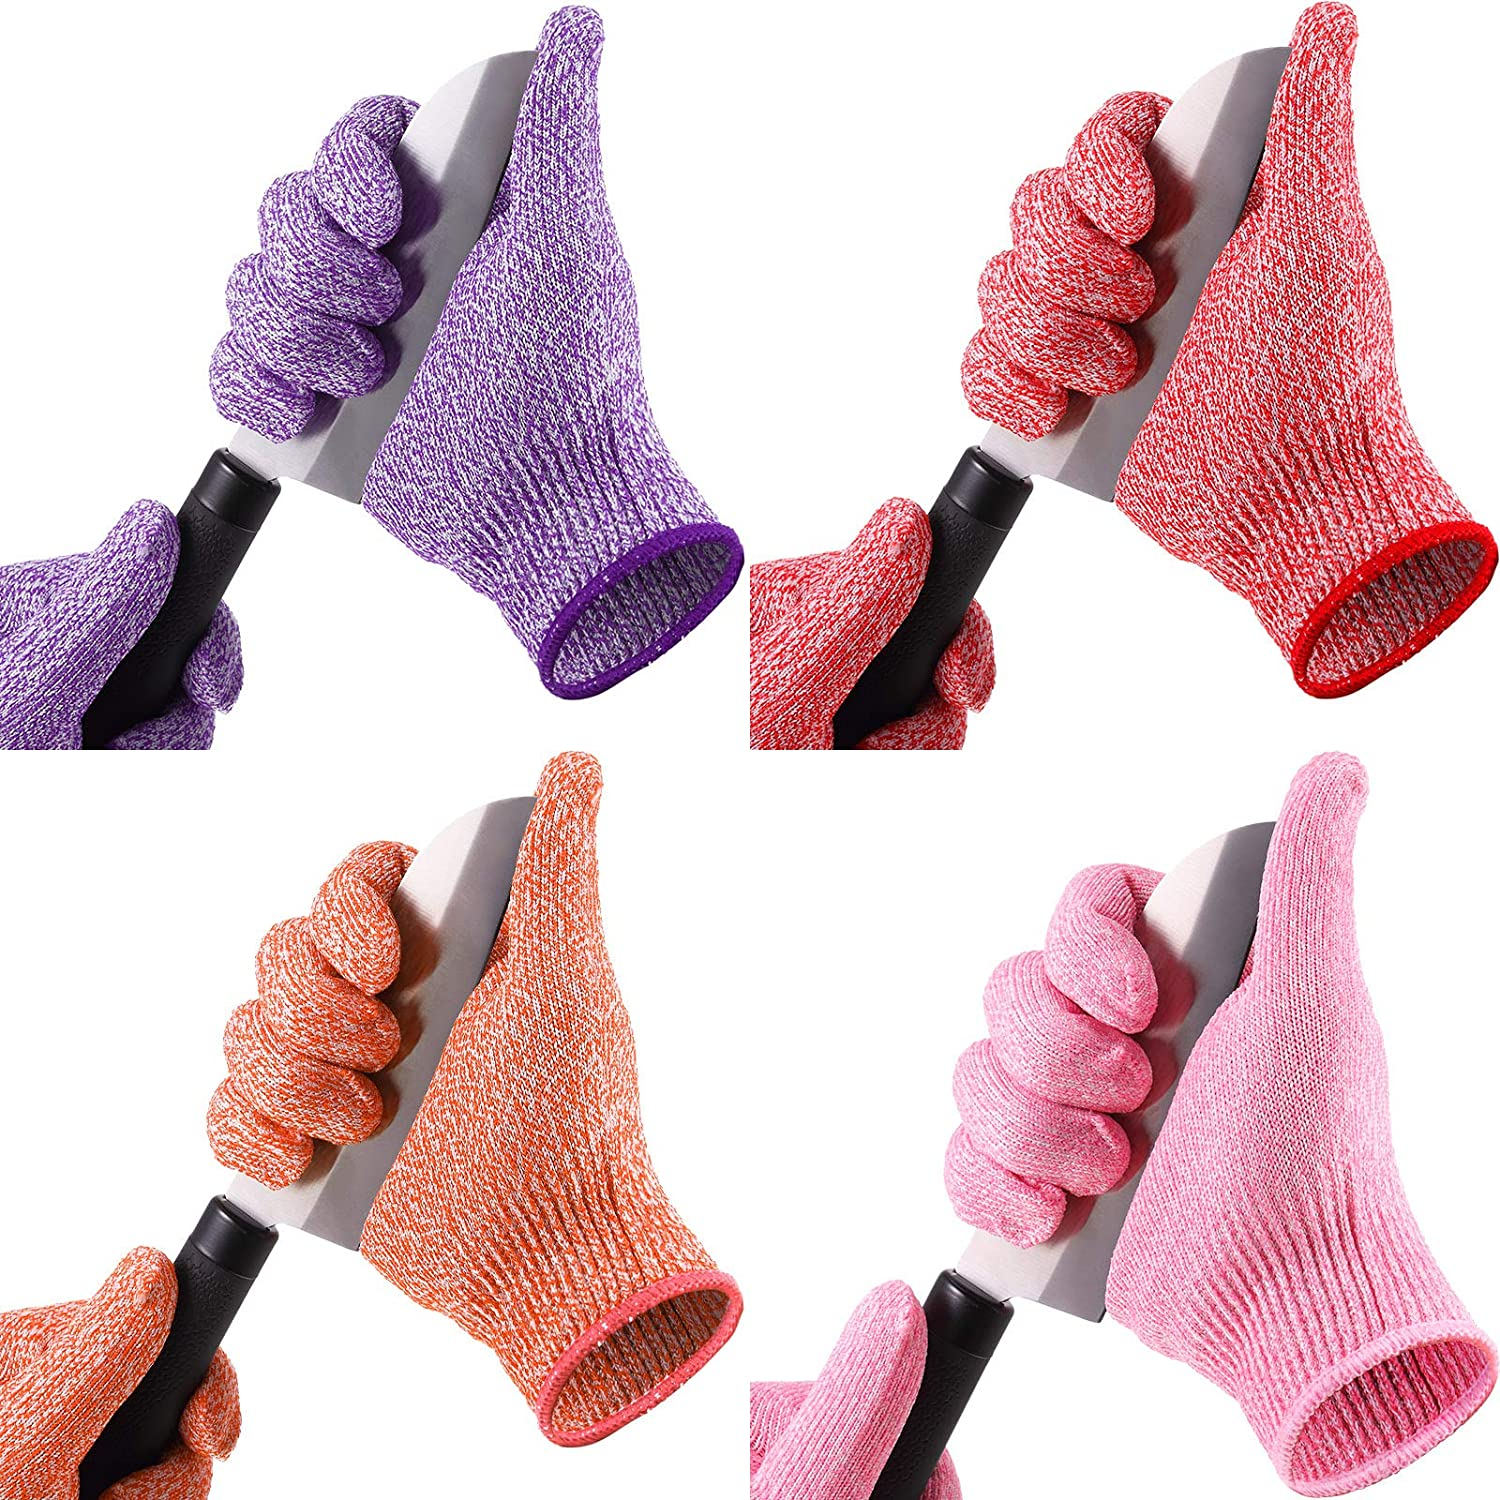 4 Pairs Cut Resistant Gloves Raleigh Mall Cutting We OFFer at cheap prices Level Safety Kitchen